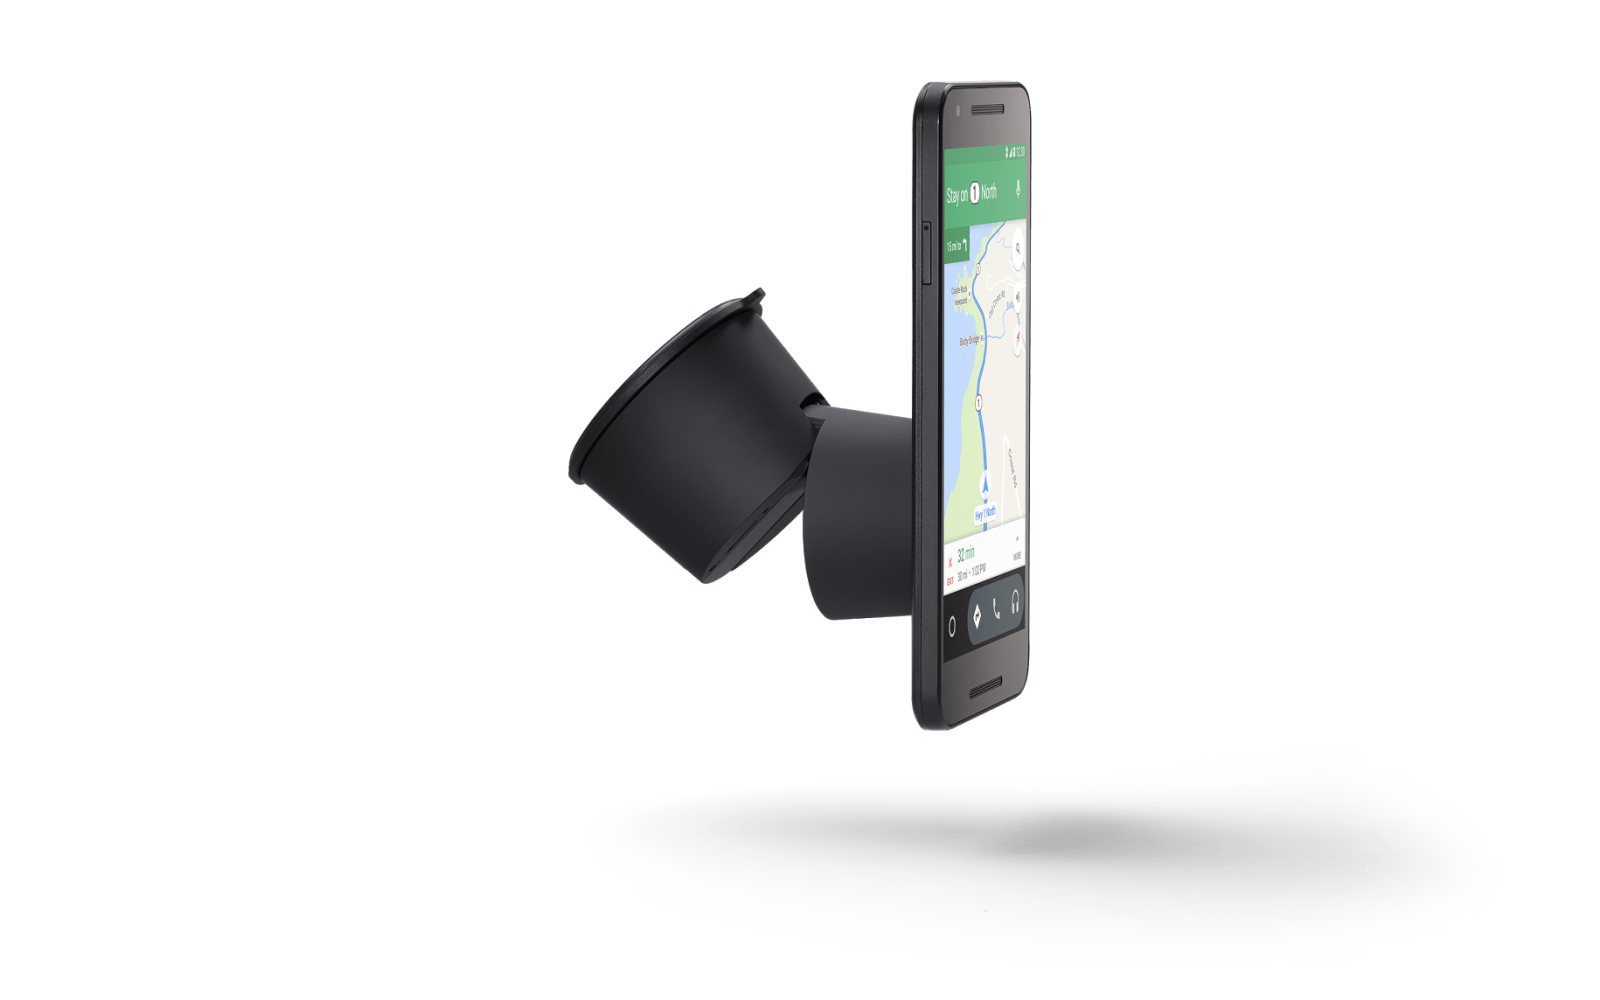 Logitech's Bluetooth car mounts for Android Auto are now available